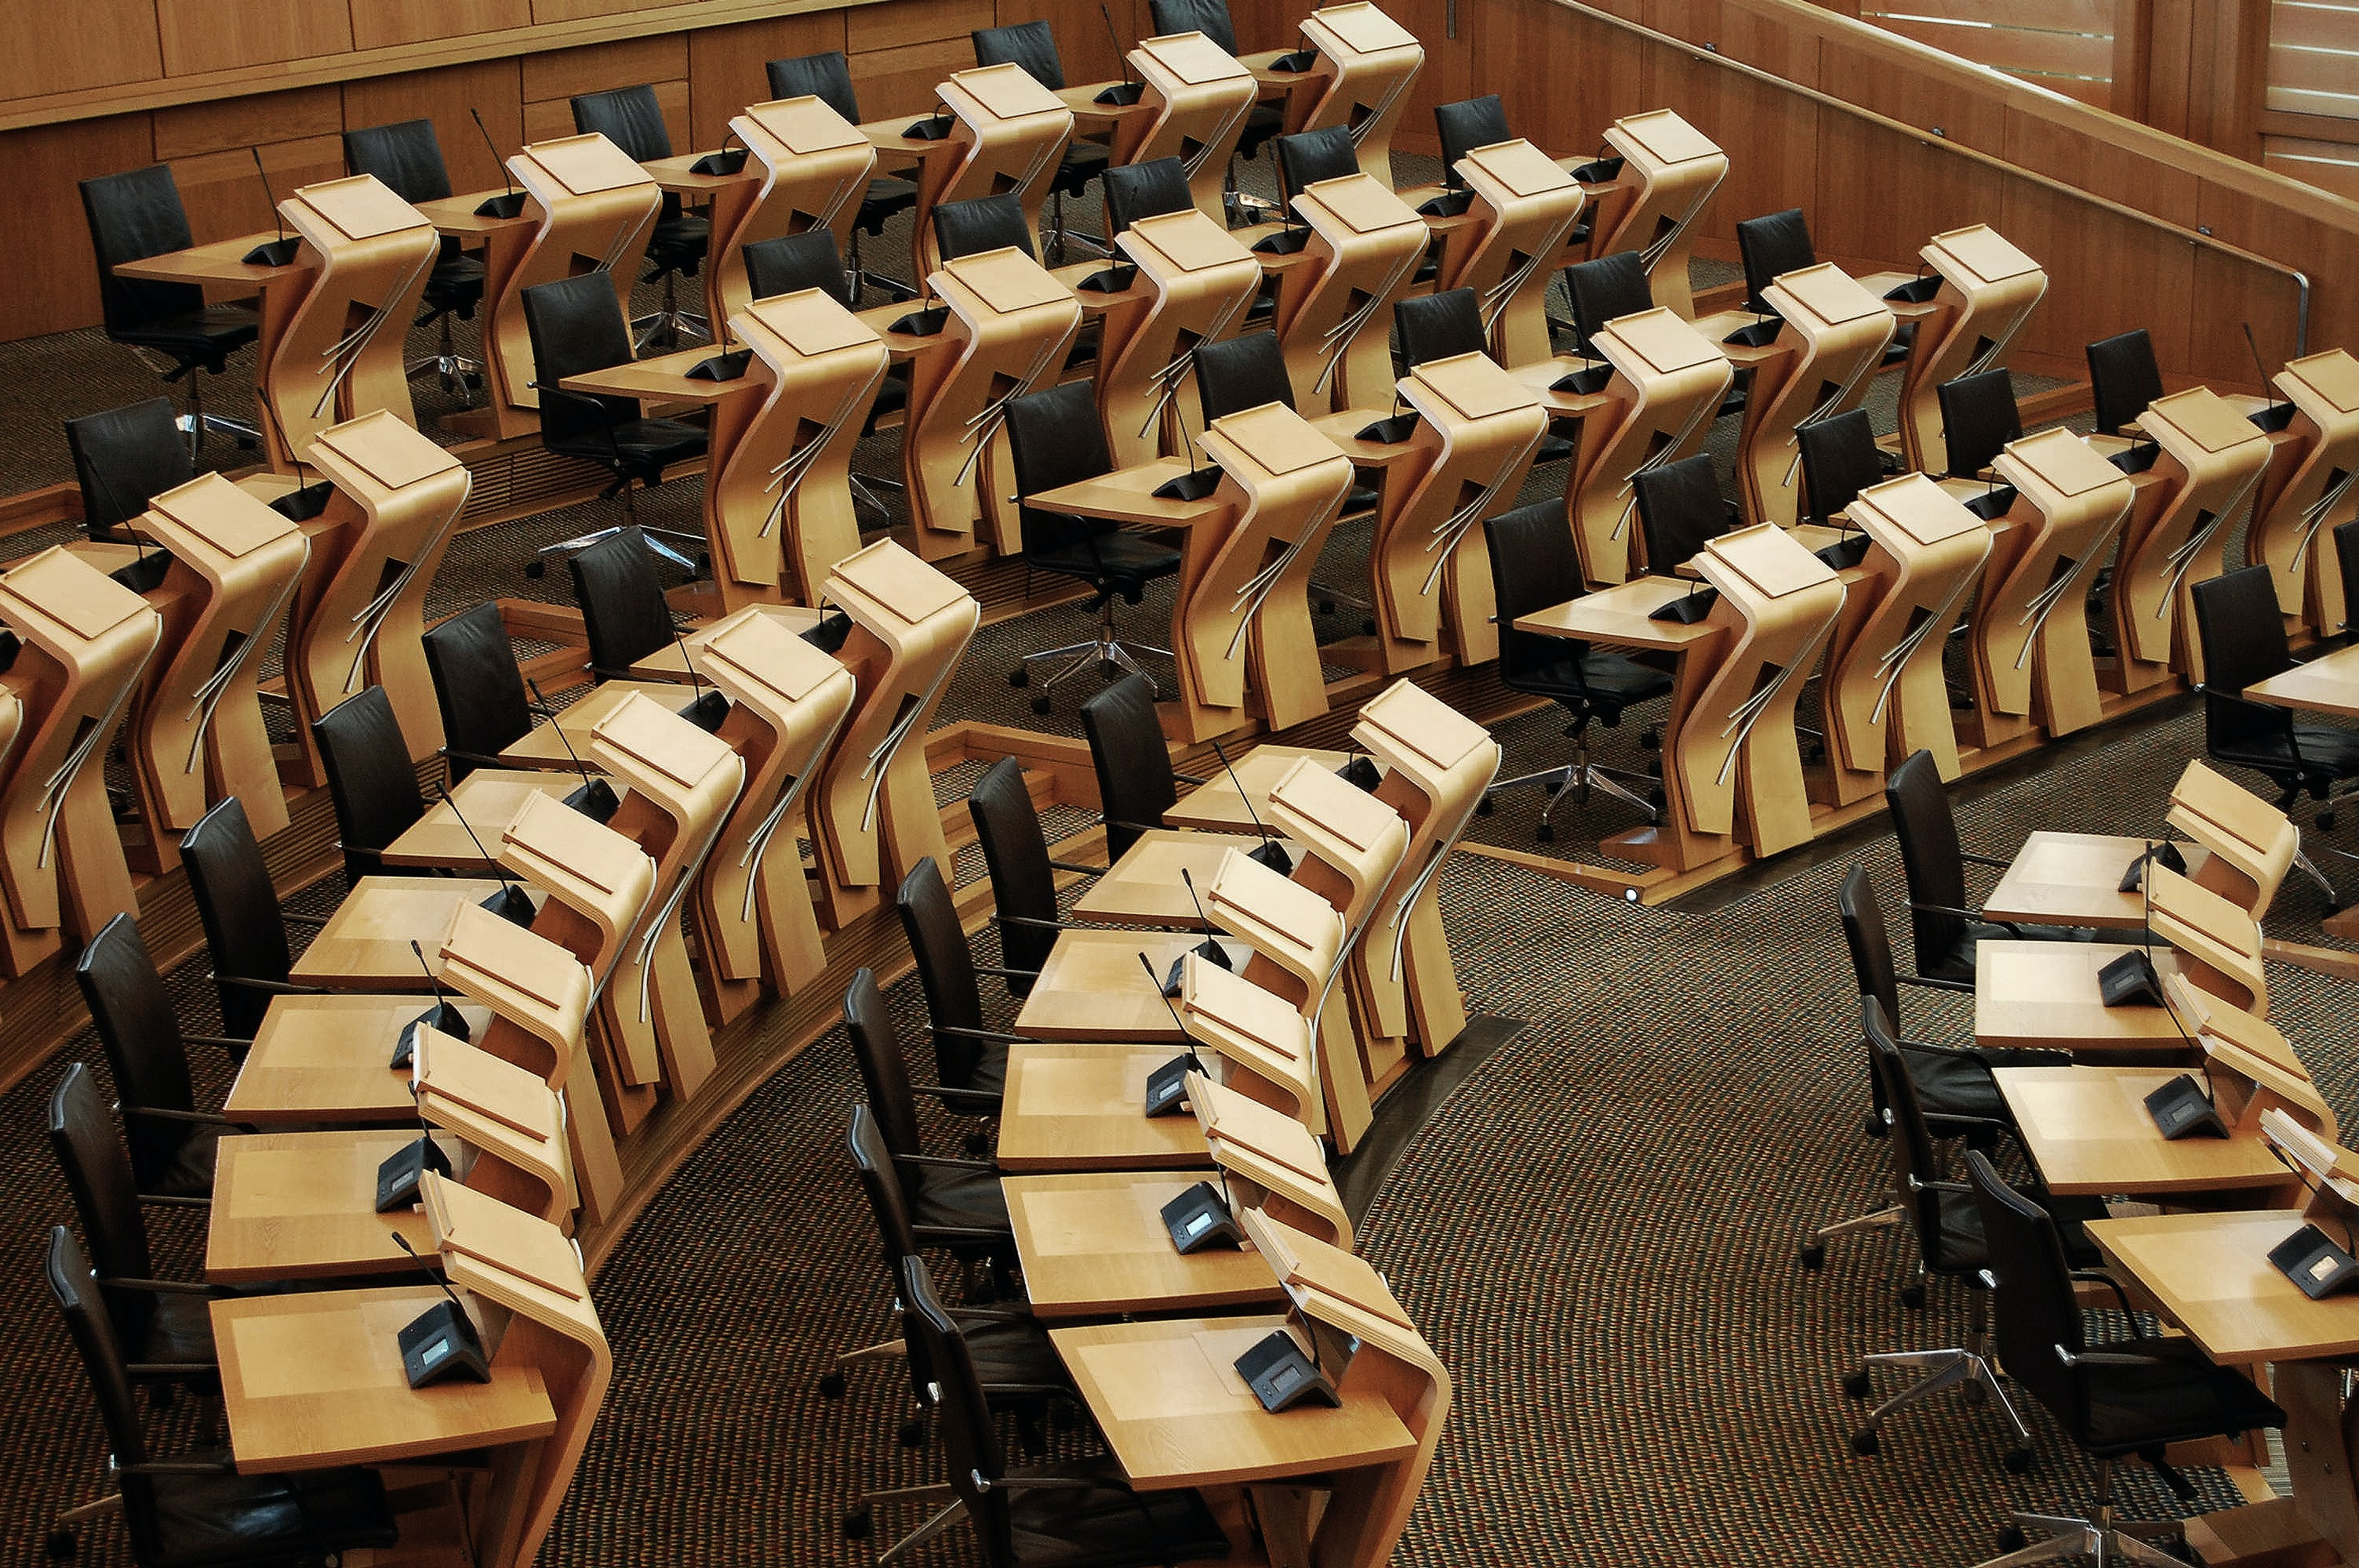 well-arranged rolling chairs and desks